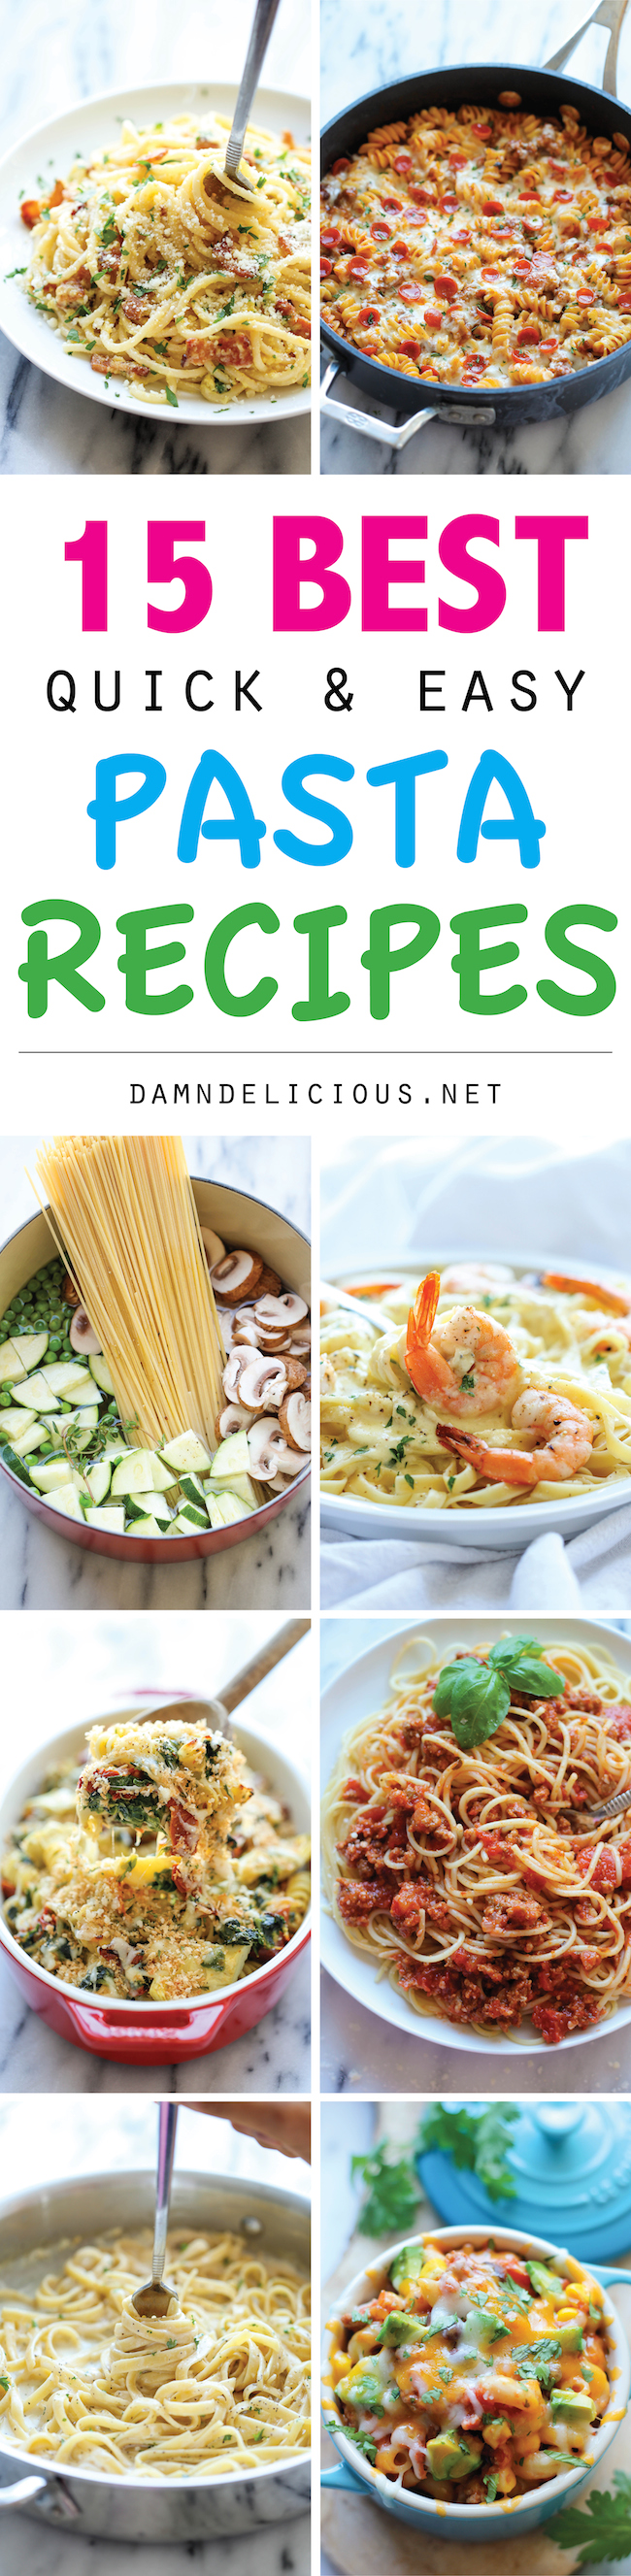 Particular Quick Easy Pasta Recipes From One Pot Meals To Min Dishes Quick Fall Pasta Recipes Nytimes Easy Pasta Recipes Damn Delicious Pasta Recipes nice food Best Pasta Recipes